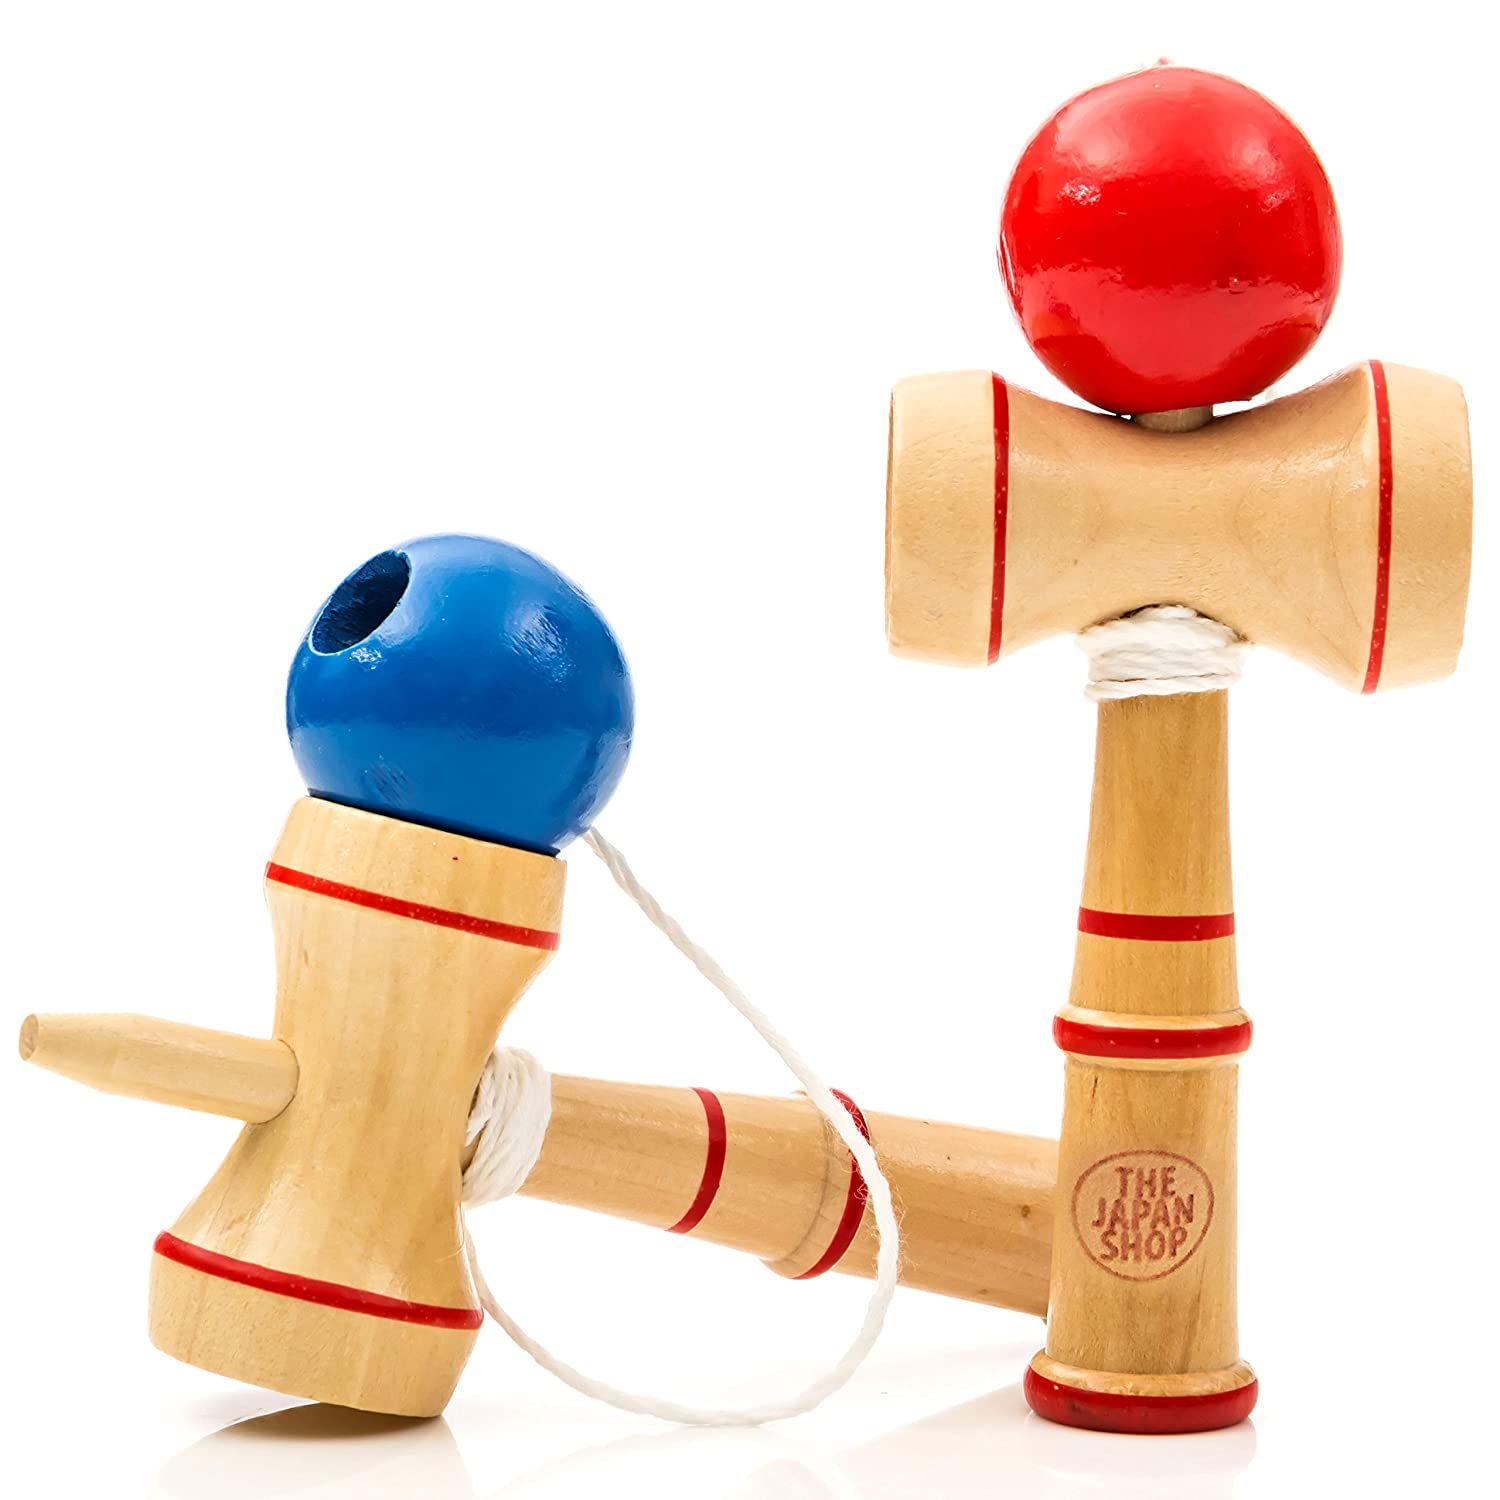 Japanese Toys And Games : The japan shop pocket kendama wooden mini traditional